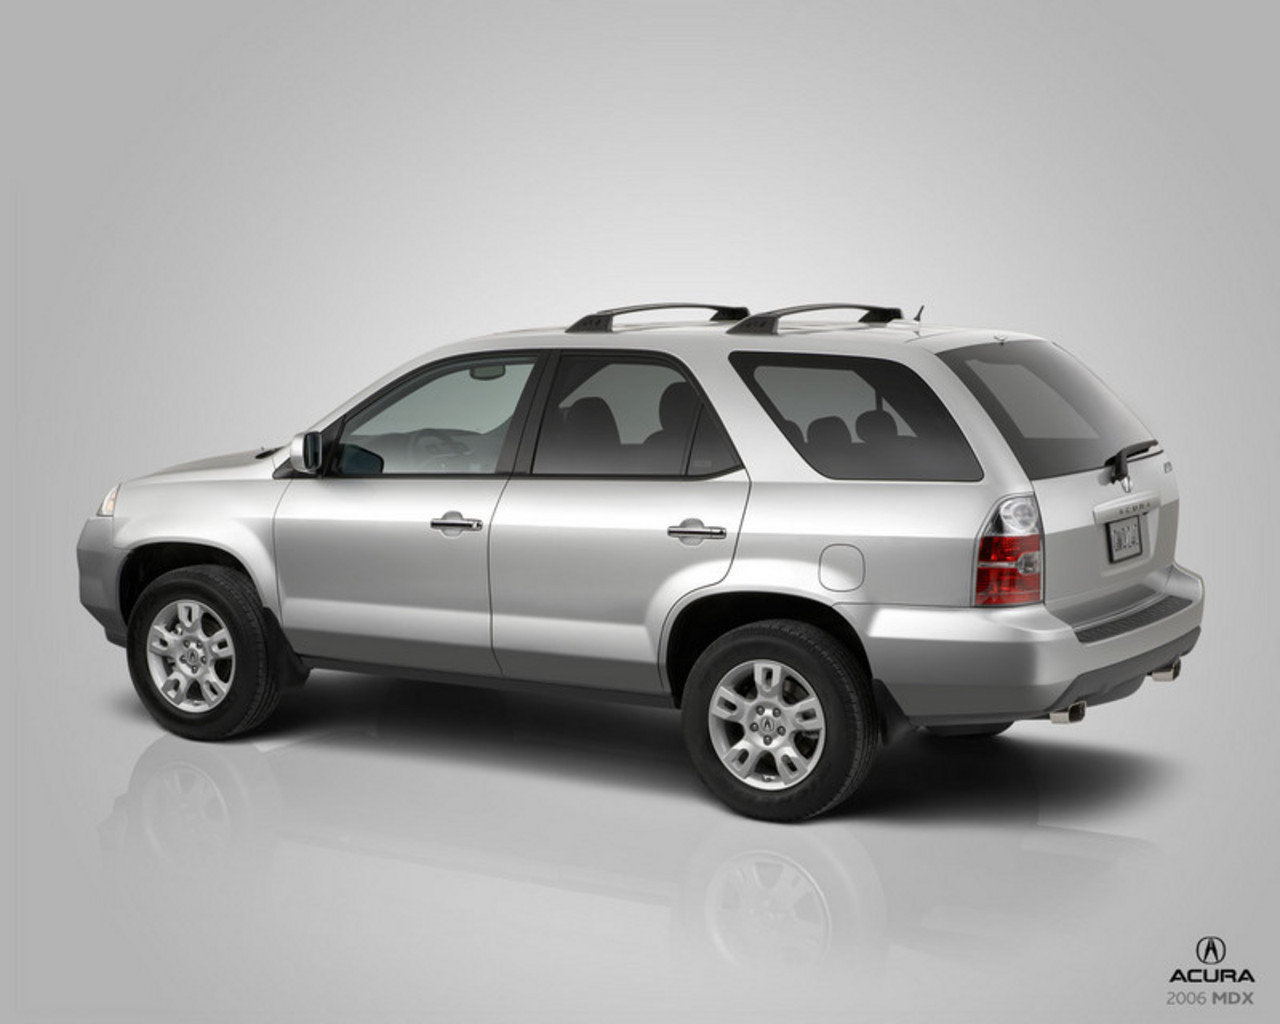 2006 acura mdx picture 35327 car review top speed. Black Bedroom Furniture Sets. Home Design Ideas